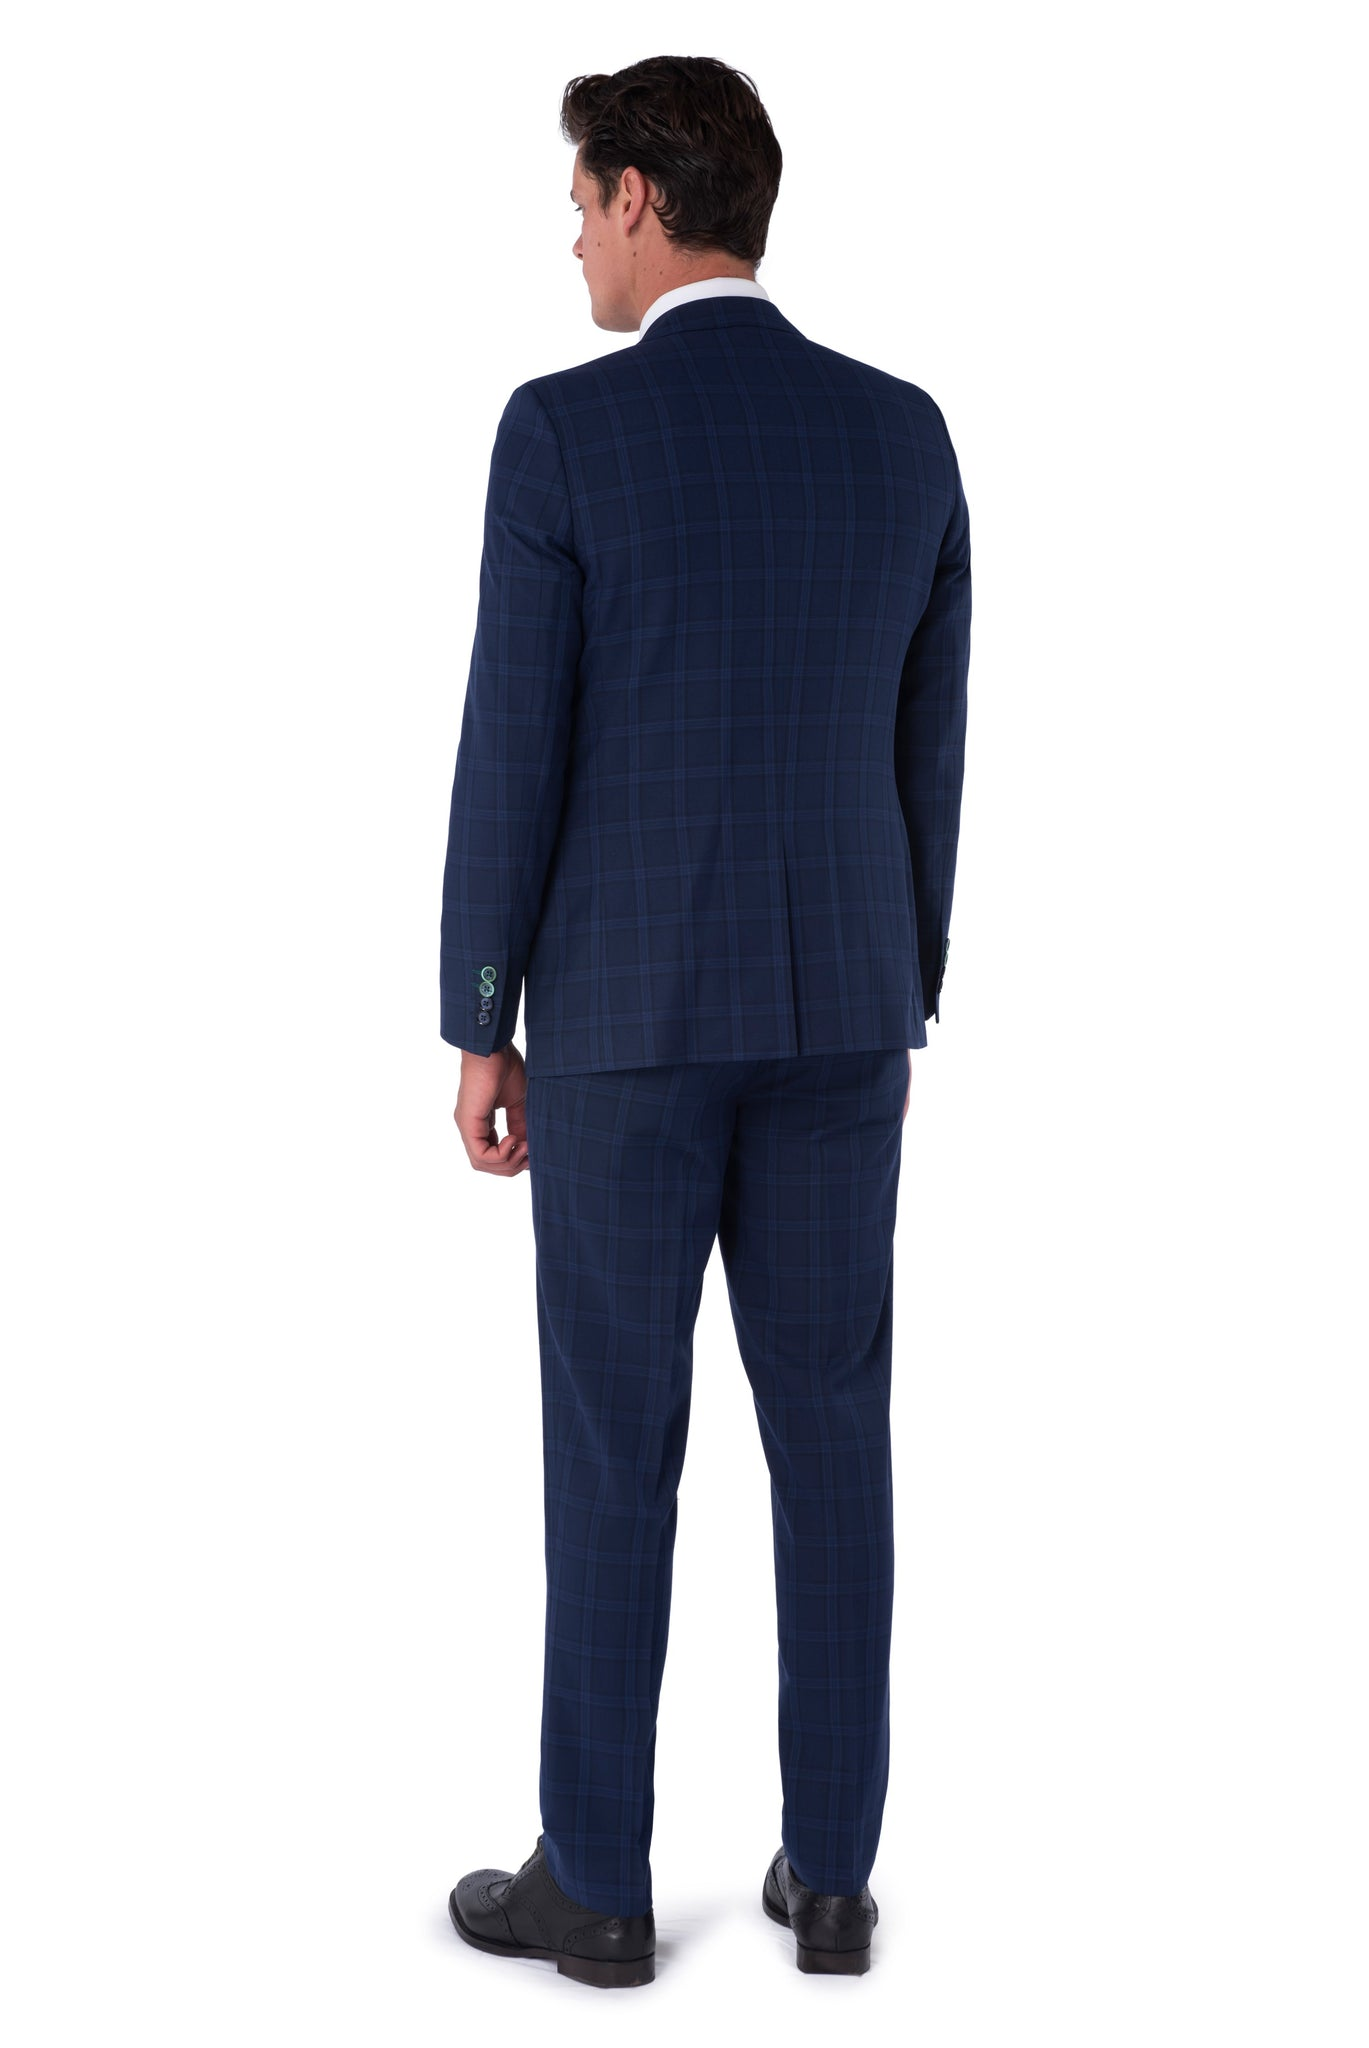 Back of JACOB Navy Blue Check Three Piece Slim Fit Suit